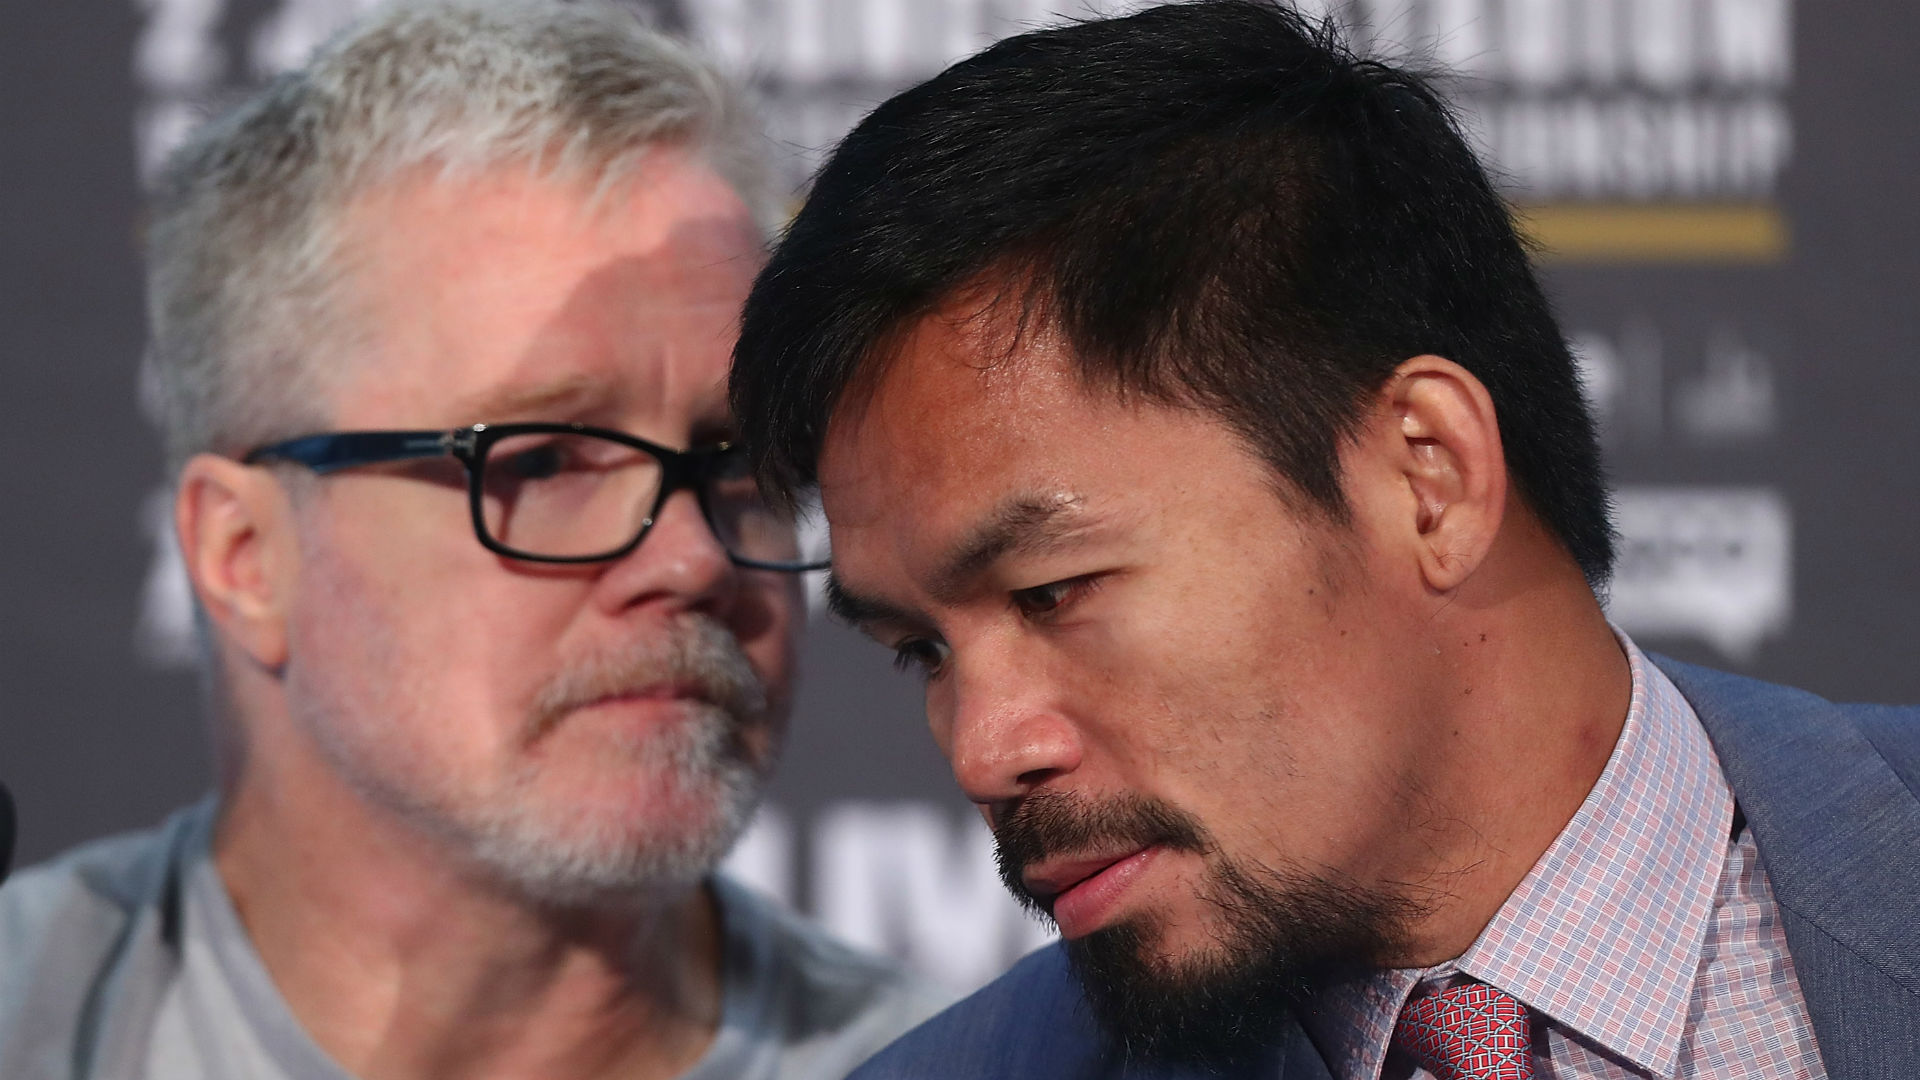 Horn taunts Mayweather after stunning Pacquiao victory